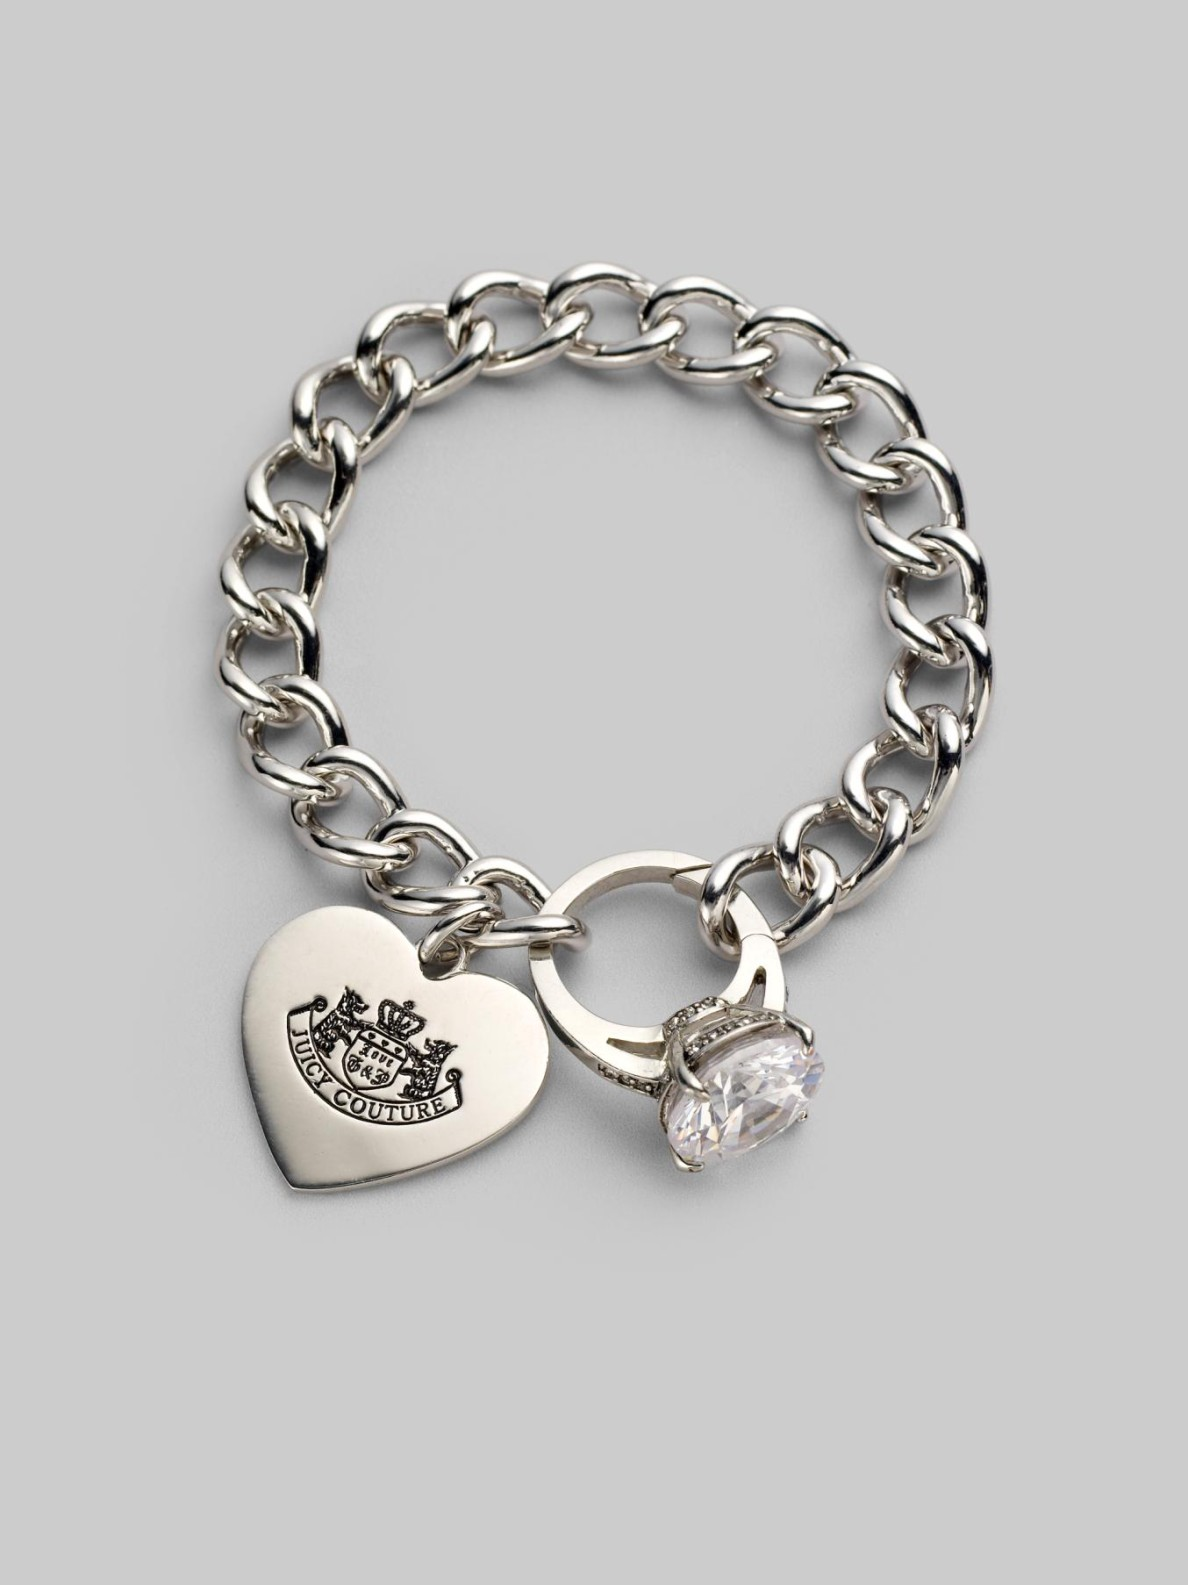 Juicy Couture Engagement Ring Charm Bracelet in Silver